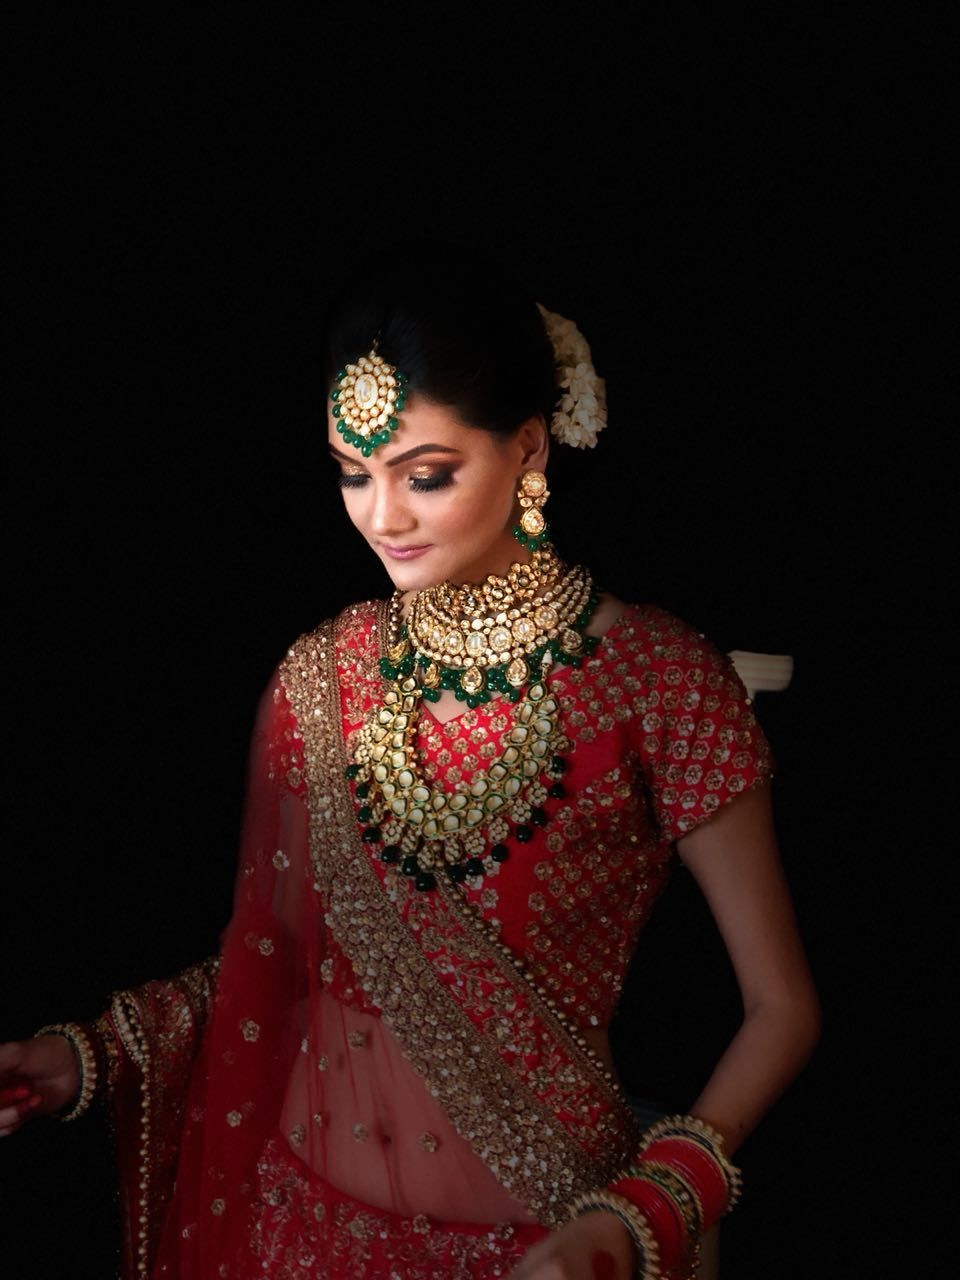 Photo From Anchal - By Vandana Piwhal Makeovers